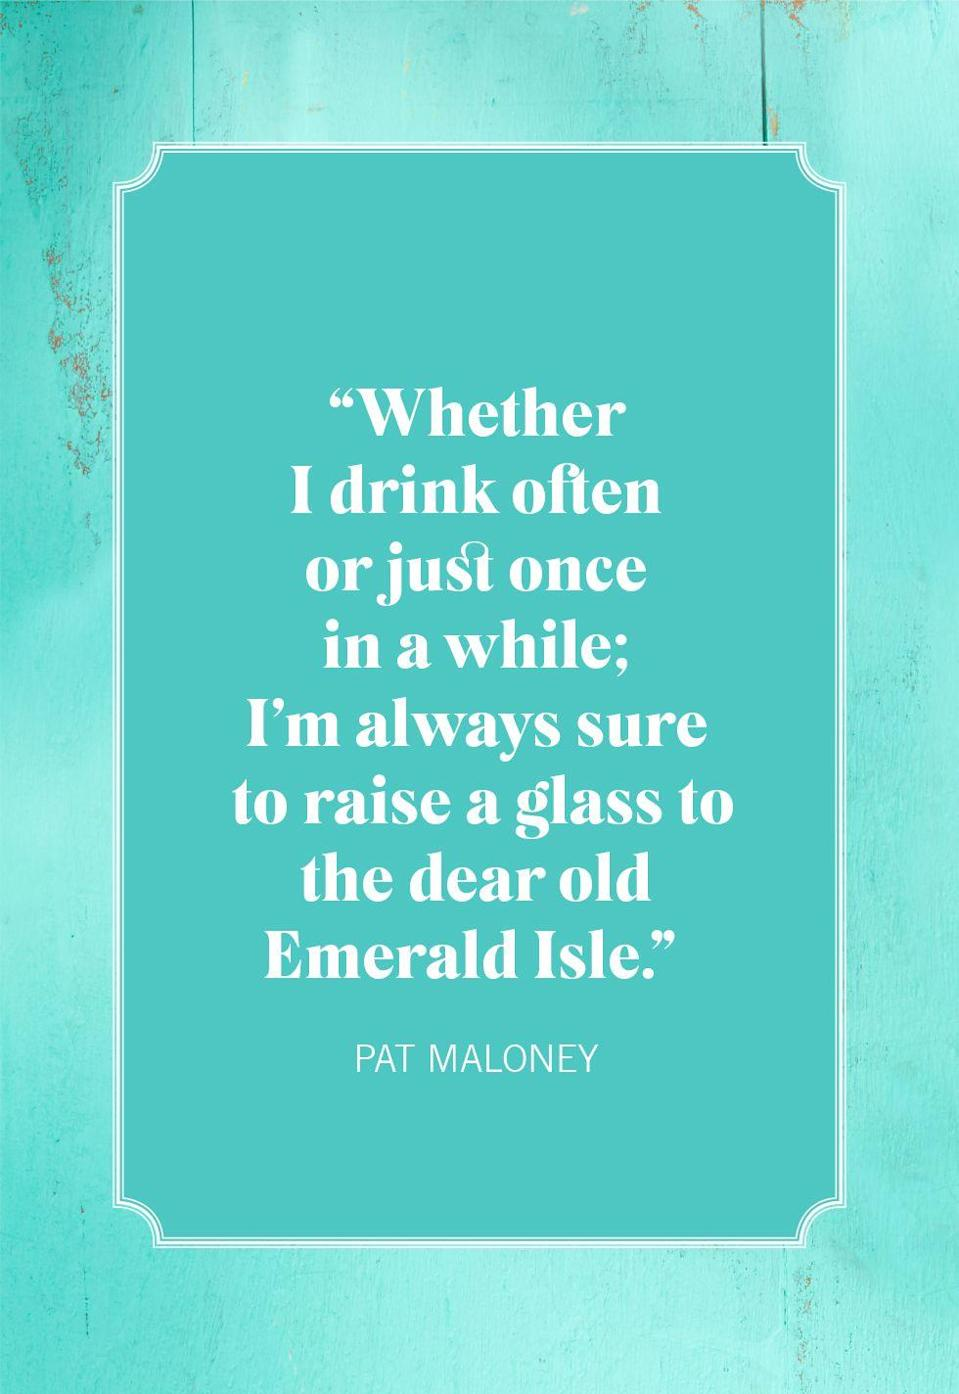 "<p>""Whether I drink often or just once in a while; I'm always sure to raise a glass to the dear old Emerald Isle.""</p>"